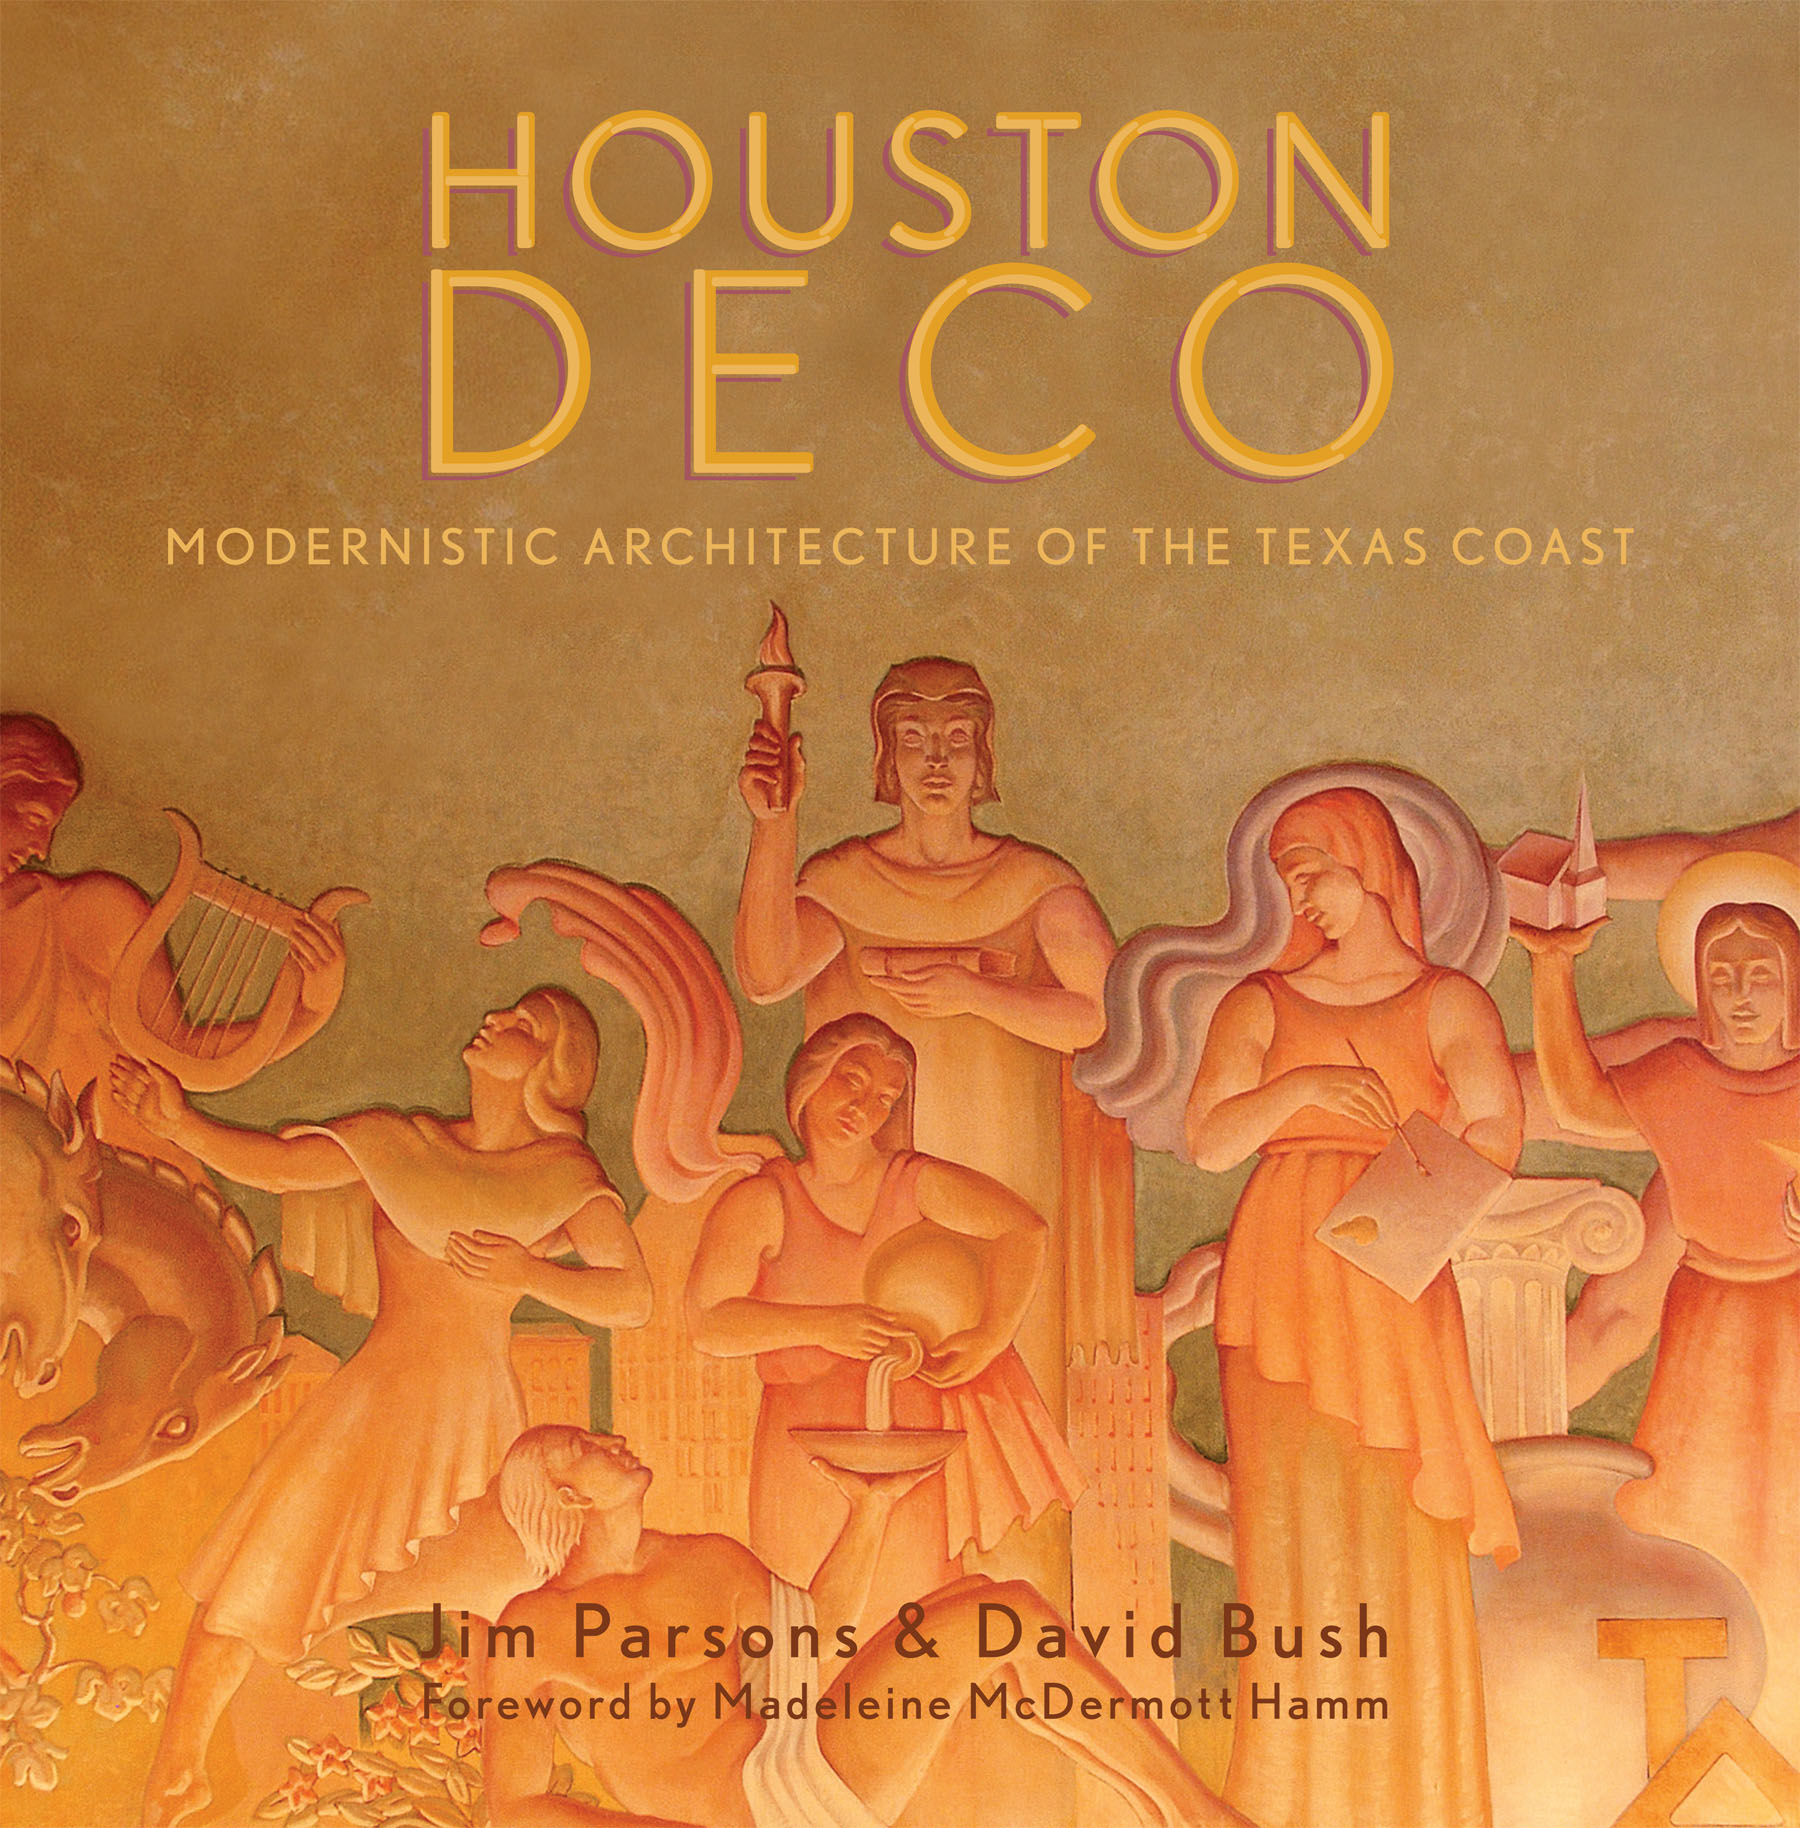 Our advocacy effort on behalf of iconic Art Deco buildings led to the publication of PH's book  Houston Deco , the first extensive examination of modernistic architecture in the Houston area.